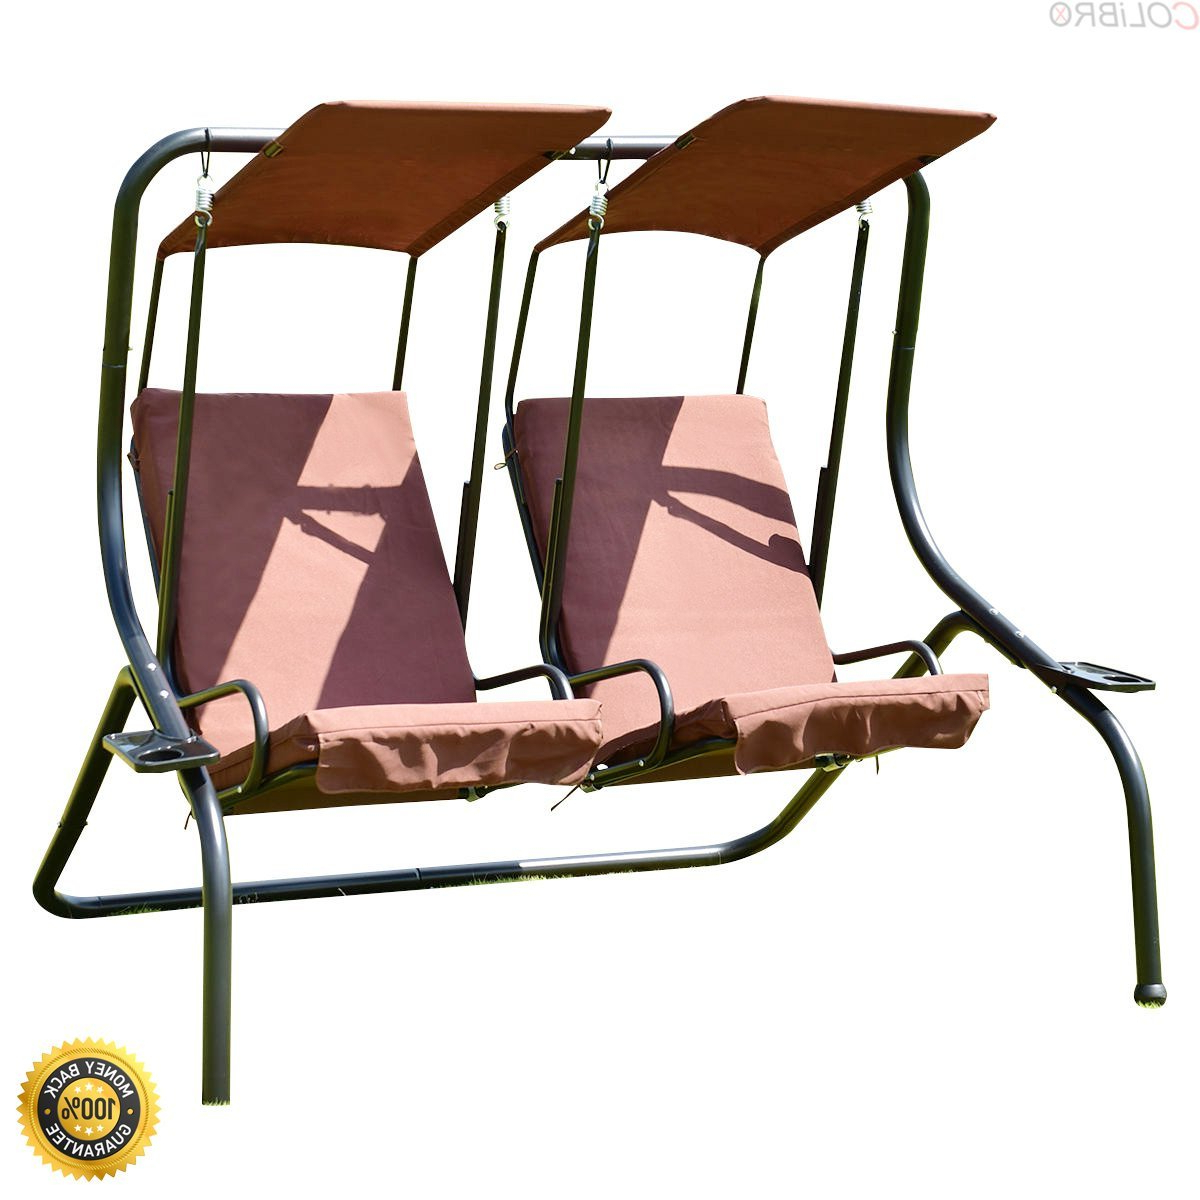 Most Recent Cheap Lowes Porch Swing, Find Lowes Porch Swing Deals On Inside 2 Person Hammock Porch Swing Patio Outdoor Hanging Loveseat Canopy Glider Swings (Gallery 18 of 25)